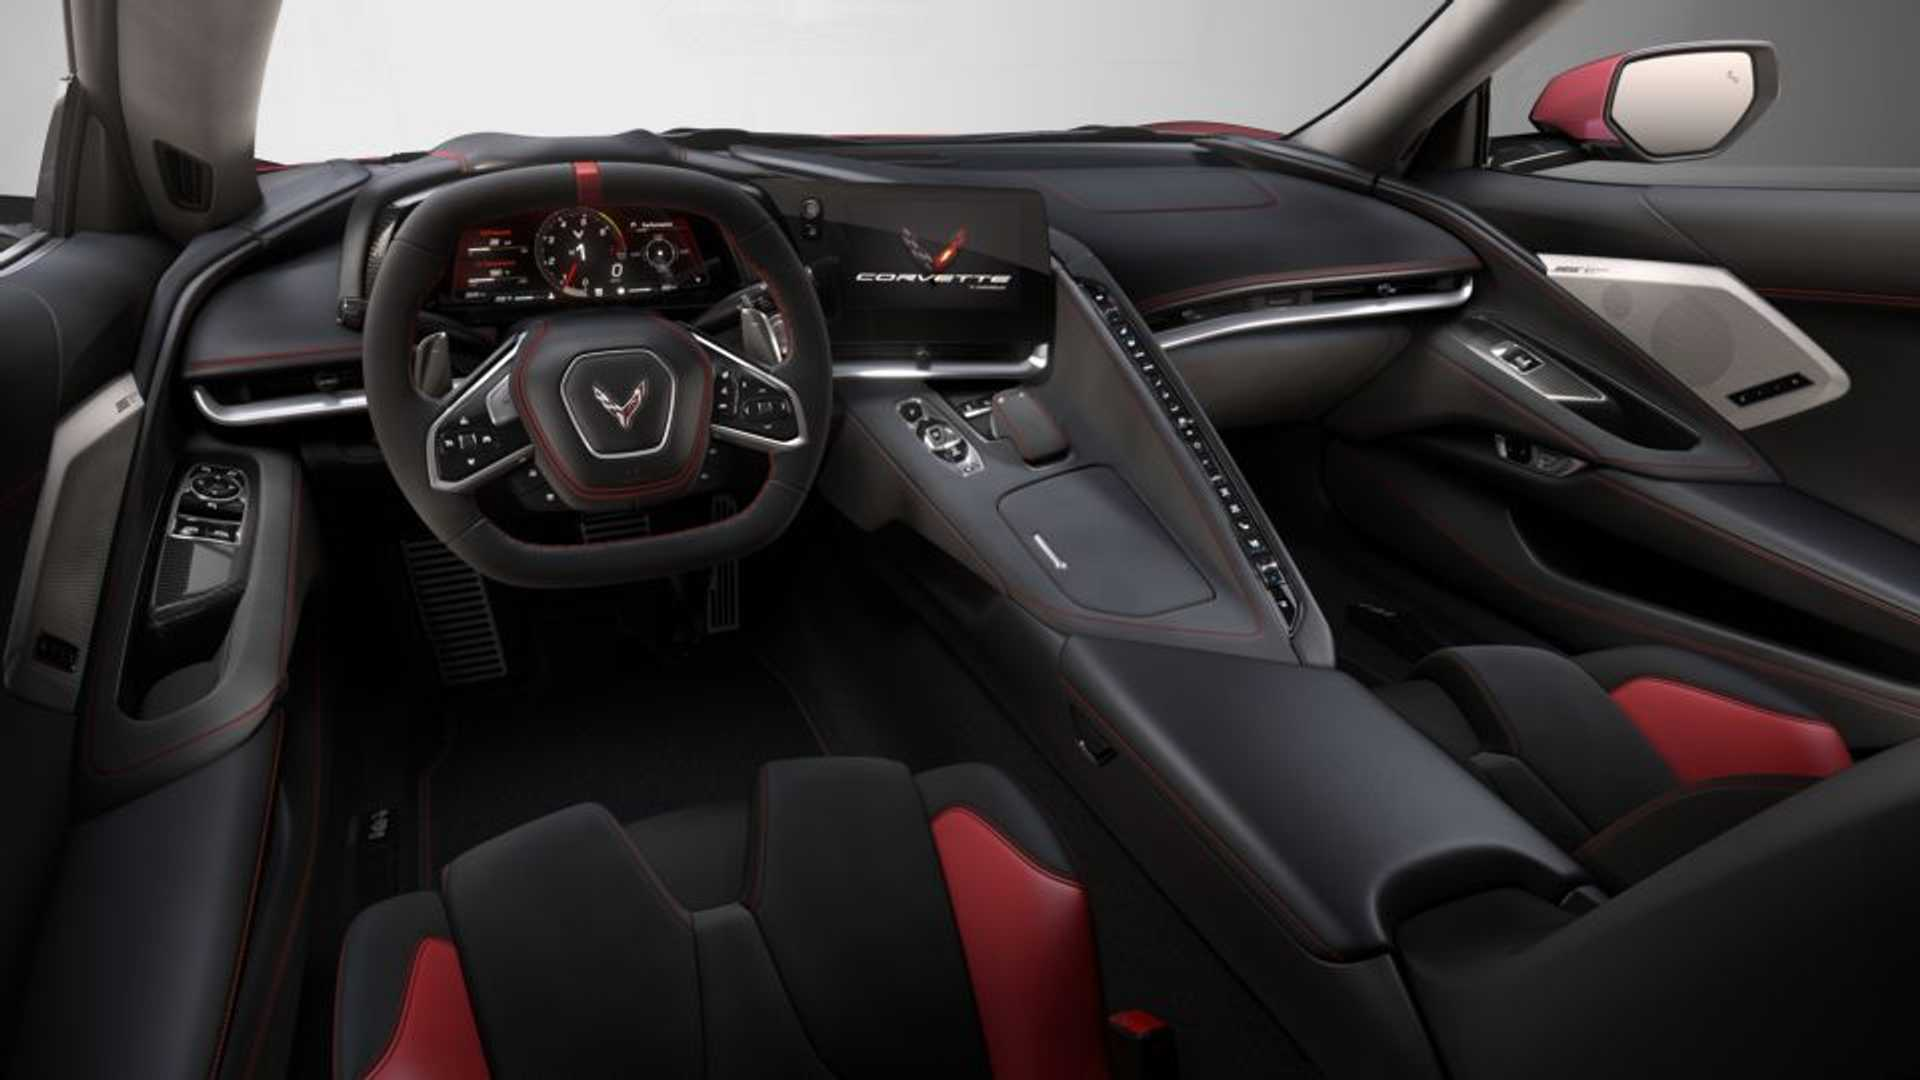 2020 CHEVROLET CORVETTE STINGRAY CONVERTIBLE